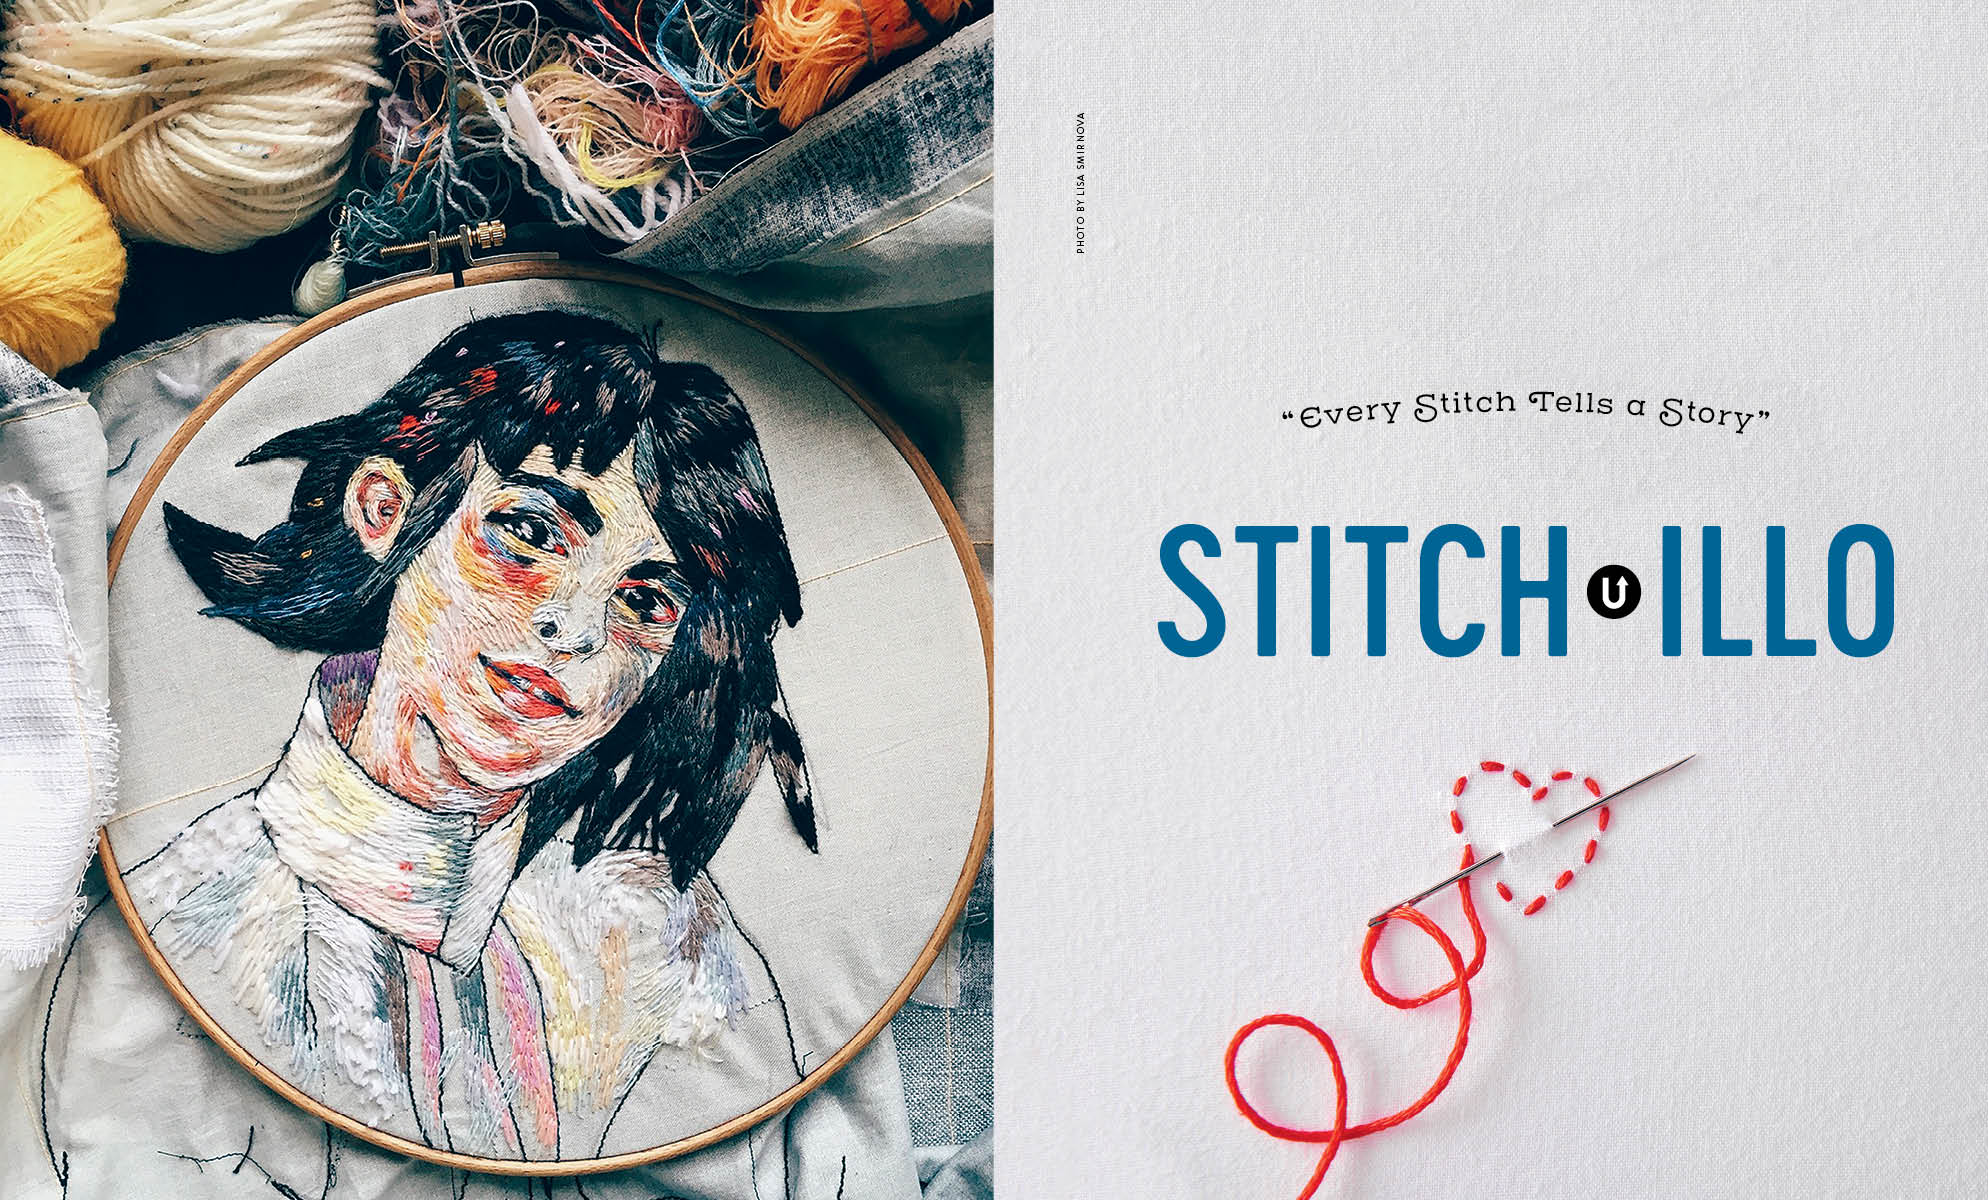 *Stitchillo final interior spreads2.jpg